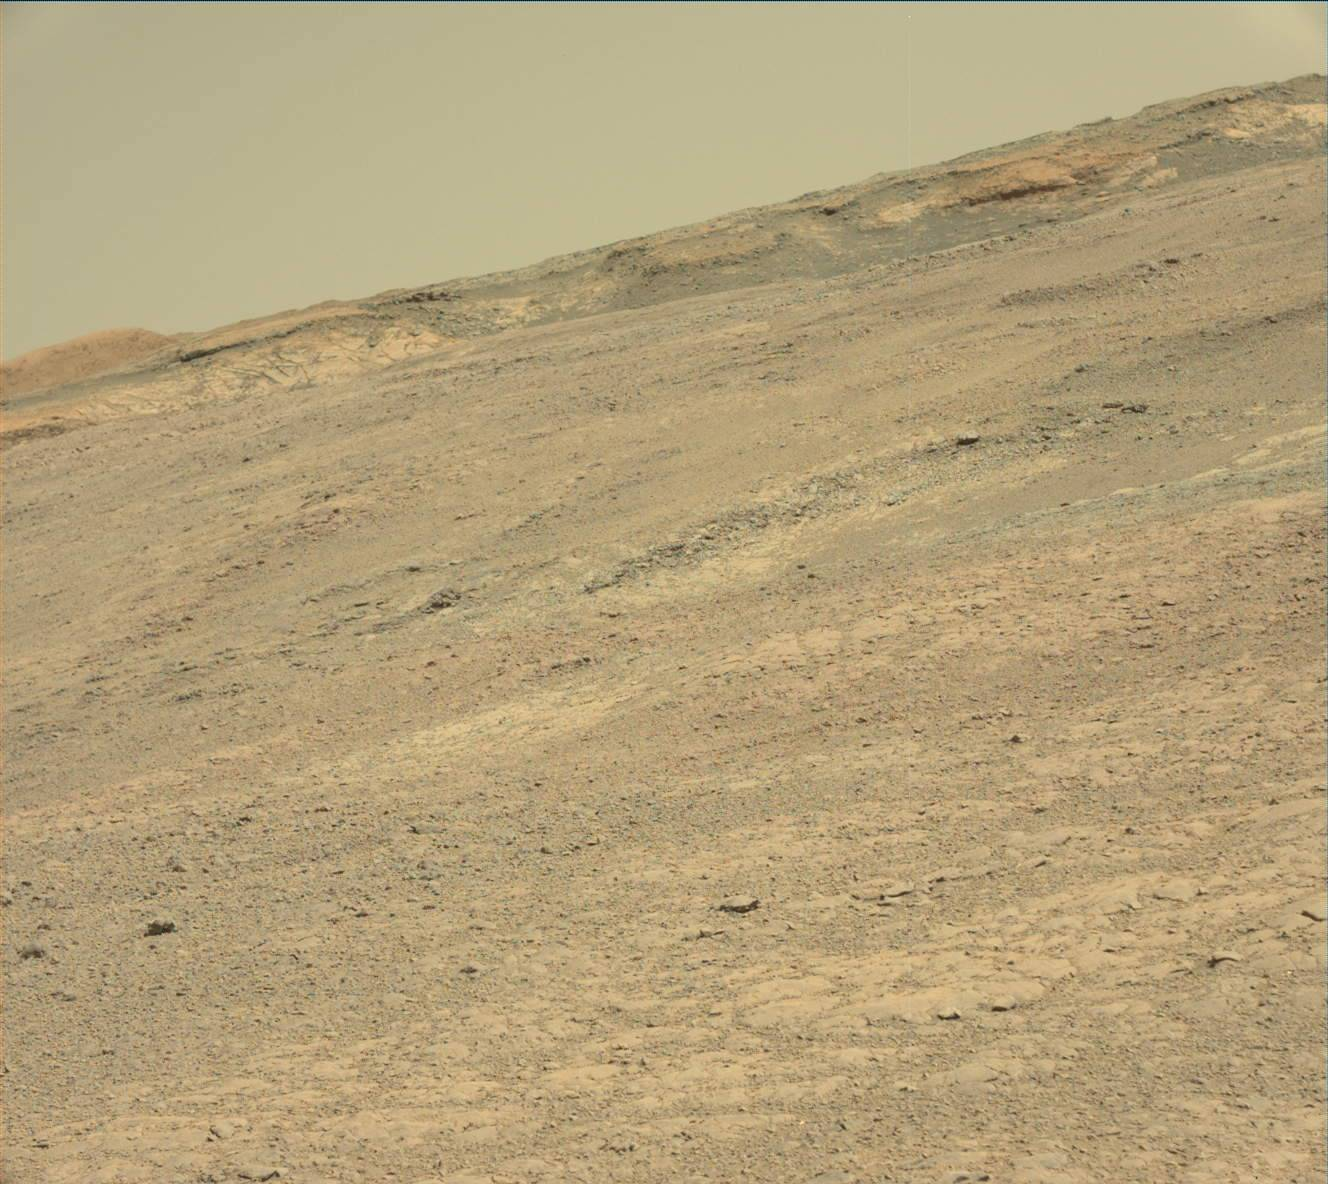 Sol 1877 - 1878: The Last Drive Before Thanksgiving